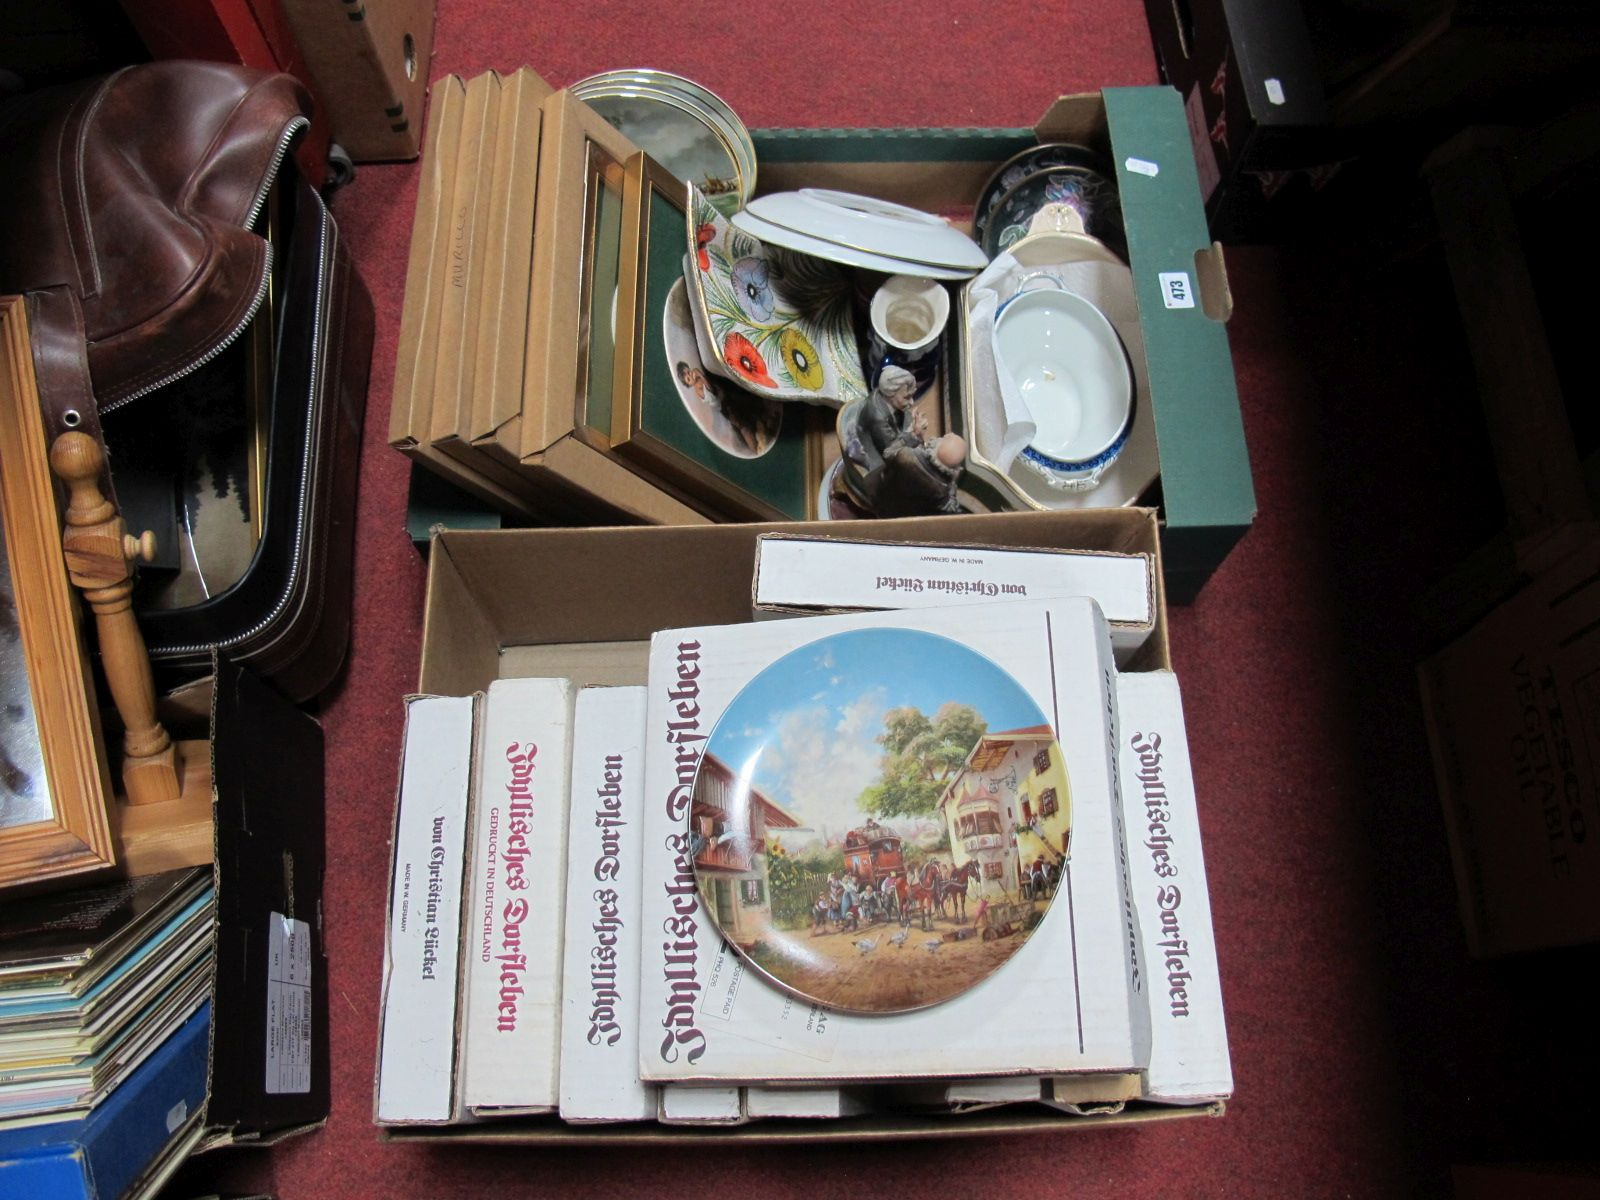 Lot 473 - Italian Dish, Murillo, Seltmann and other collectors plates etc.